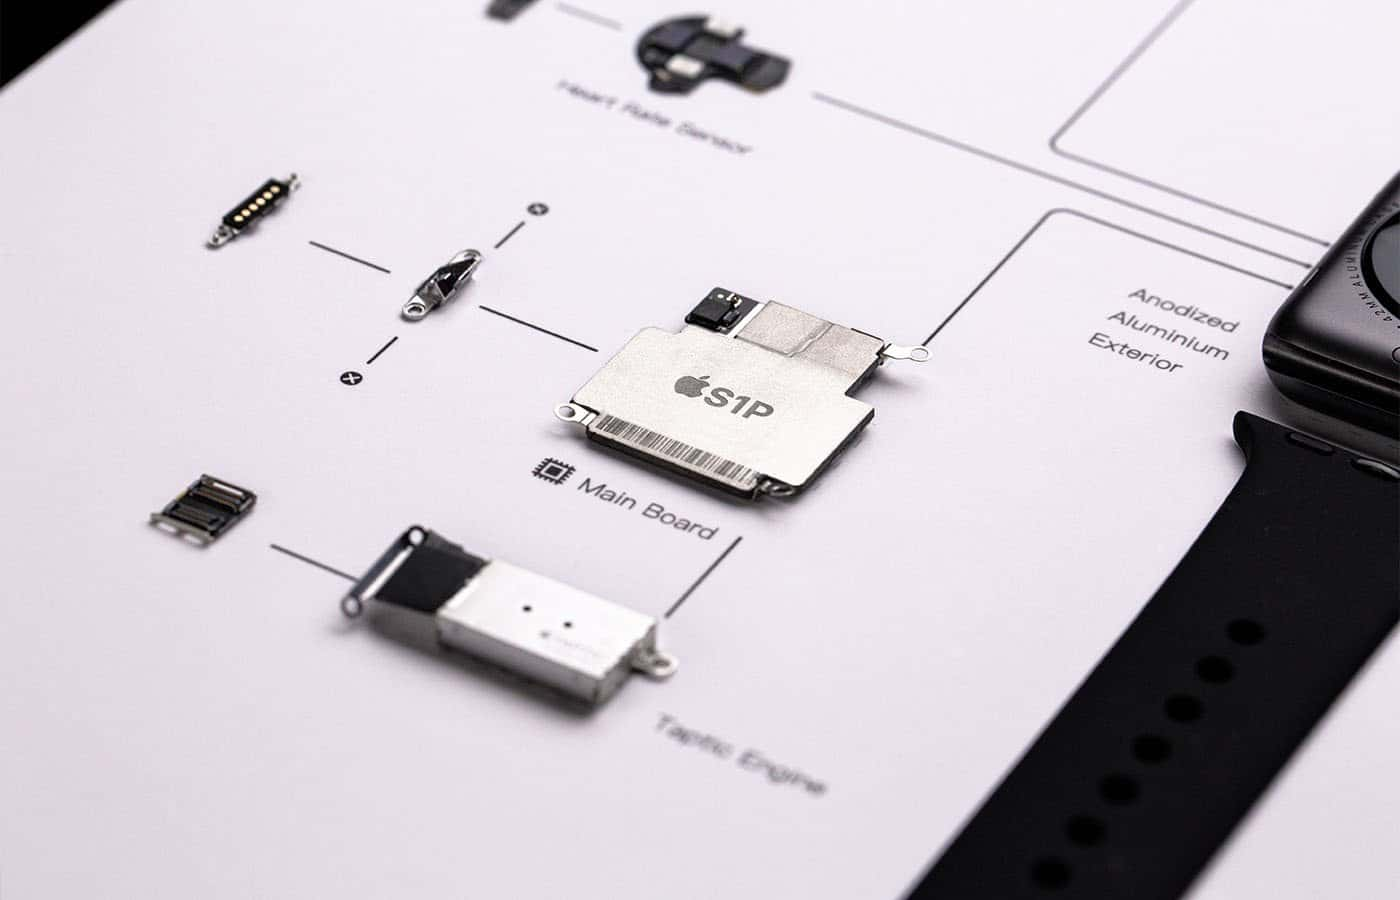 What's inside of an Apple Watch?